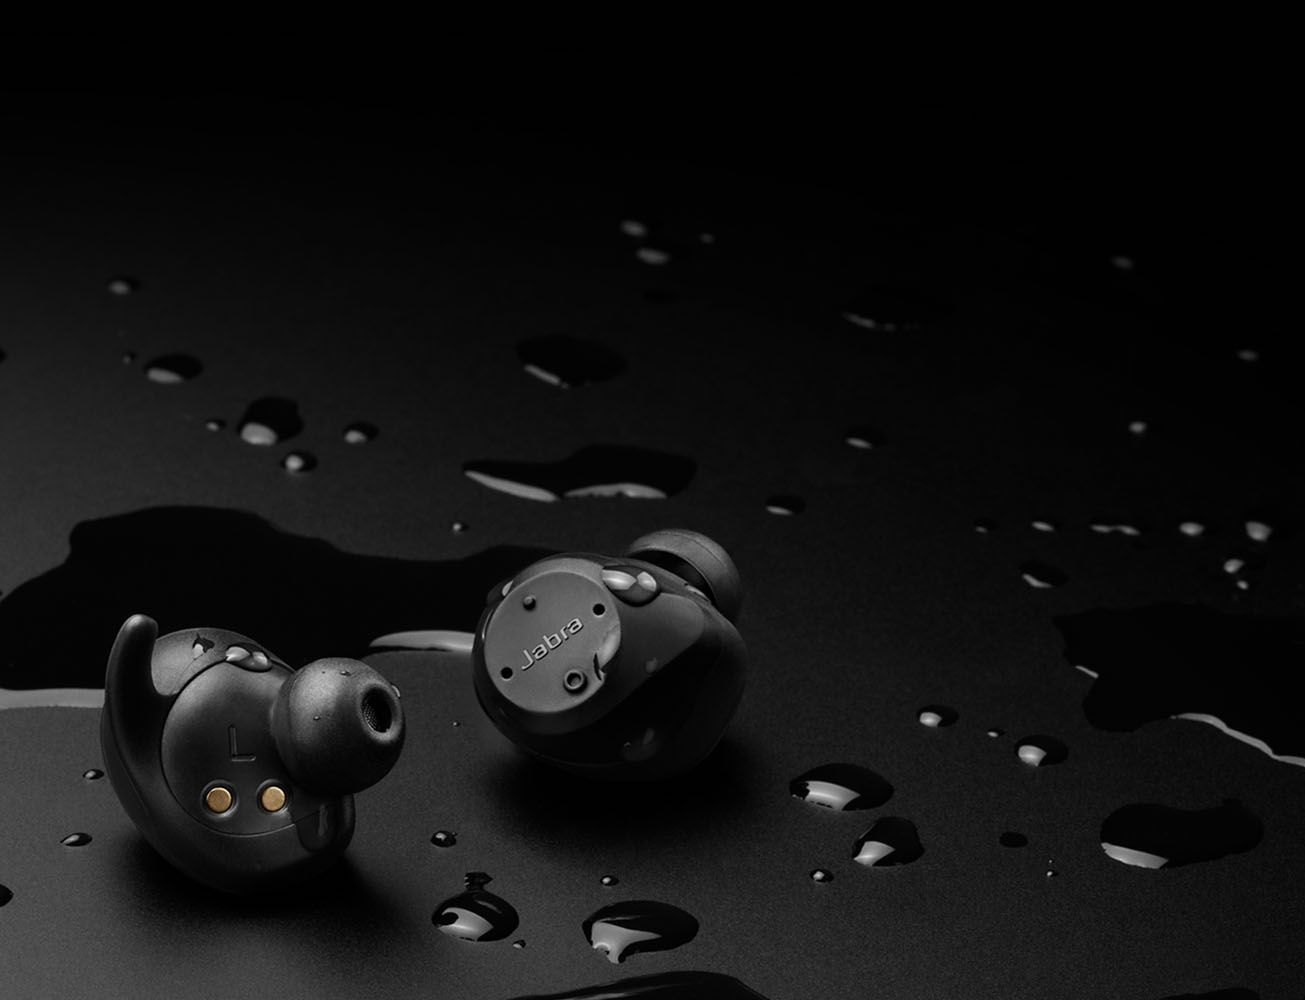 Jabra Elite Sport Wireless Earbuds with Heart Rate Monitoring